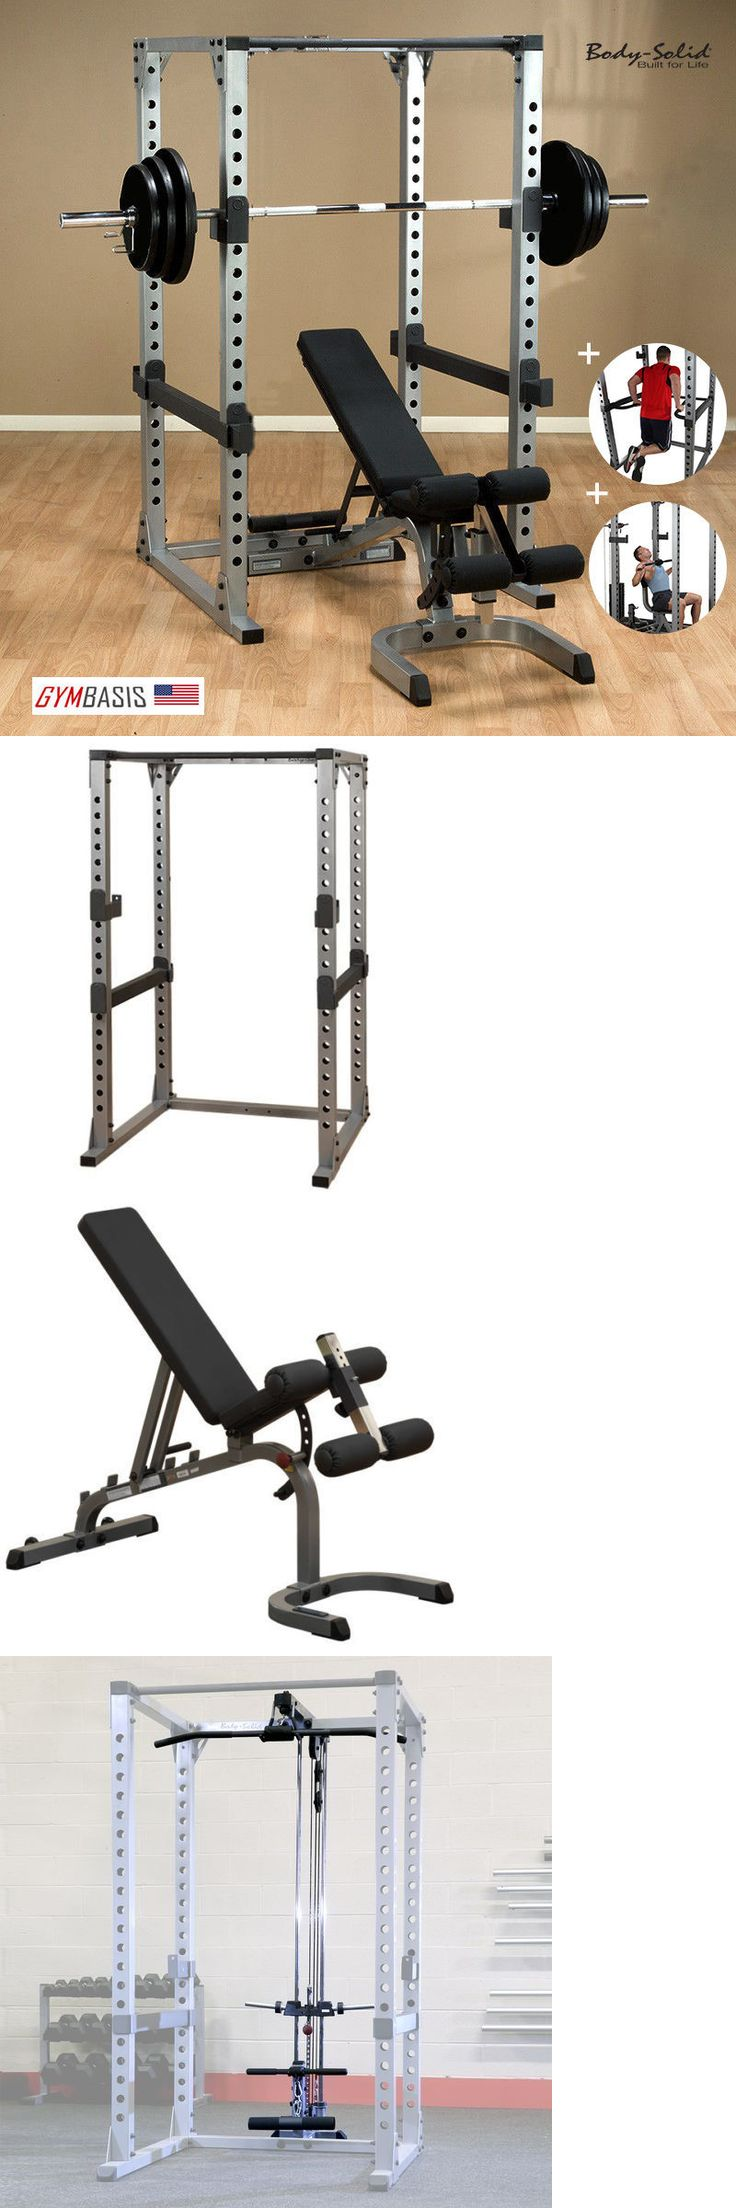 Power Racks and Smith Machines 179815: Body Solid Gpr378 Power Rack W/ Bench, 300Lb Weight Set, Dip Attach, Lat Attach BUY IT NOW ONLY: $1380.0